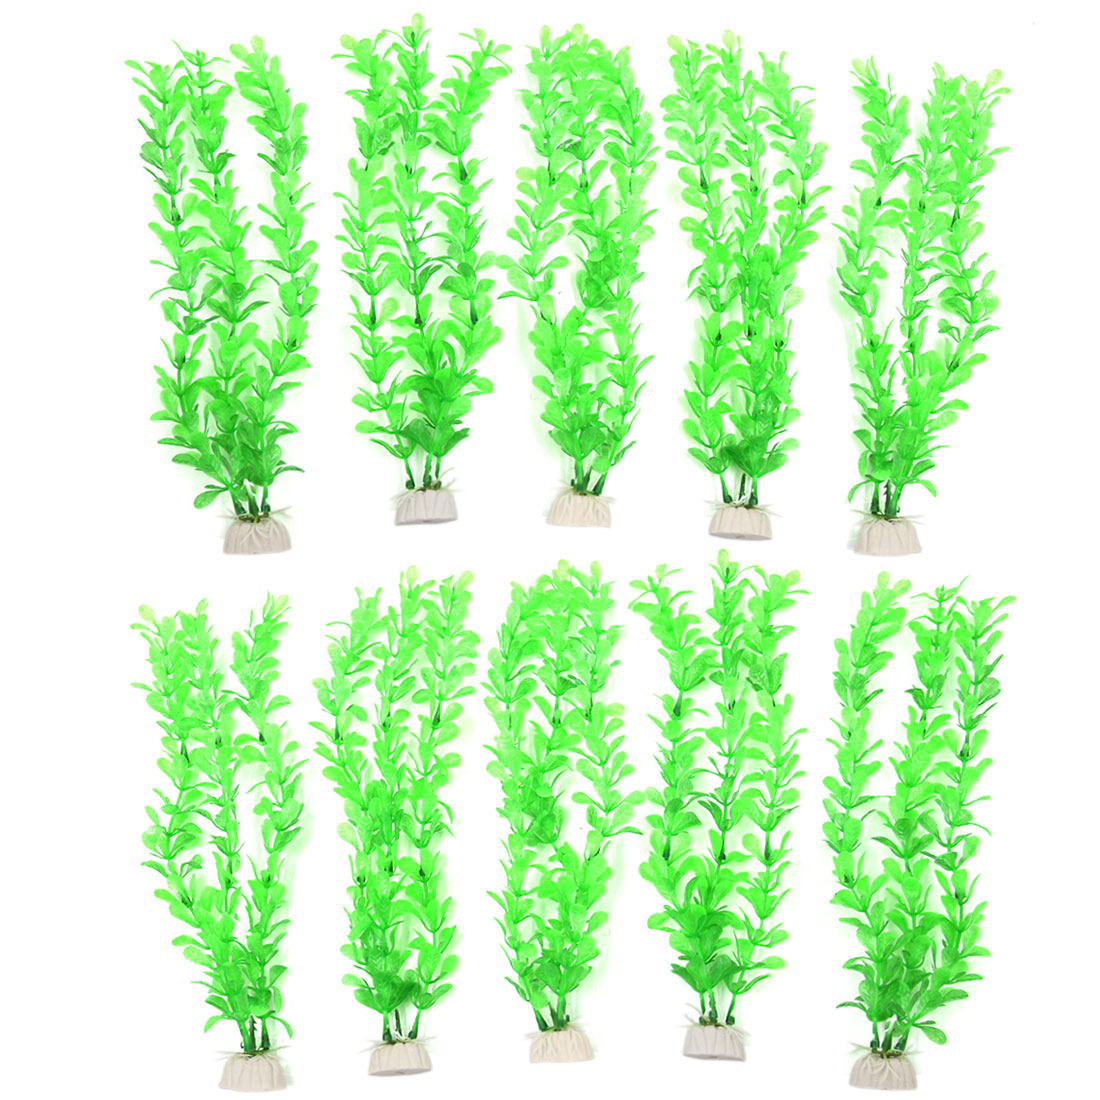 10pcs Green Plastic Aquarium Fish Tank Water Plant Decor Ornament w Ceramic Base